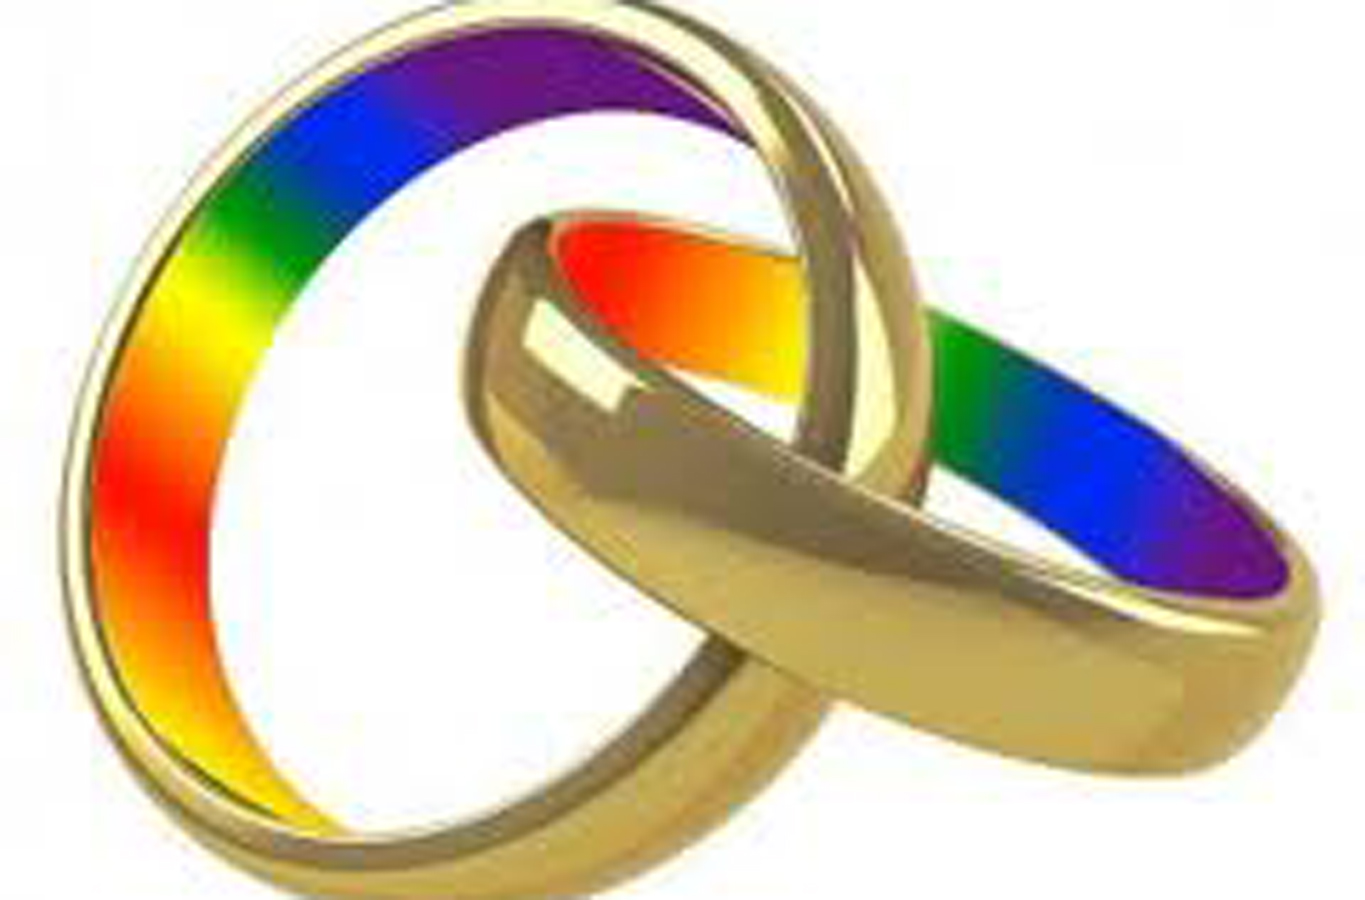 heart lesbian products image rainbow wedding gay pride rings lgbt unique product ring and